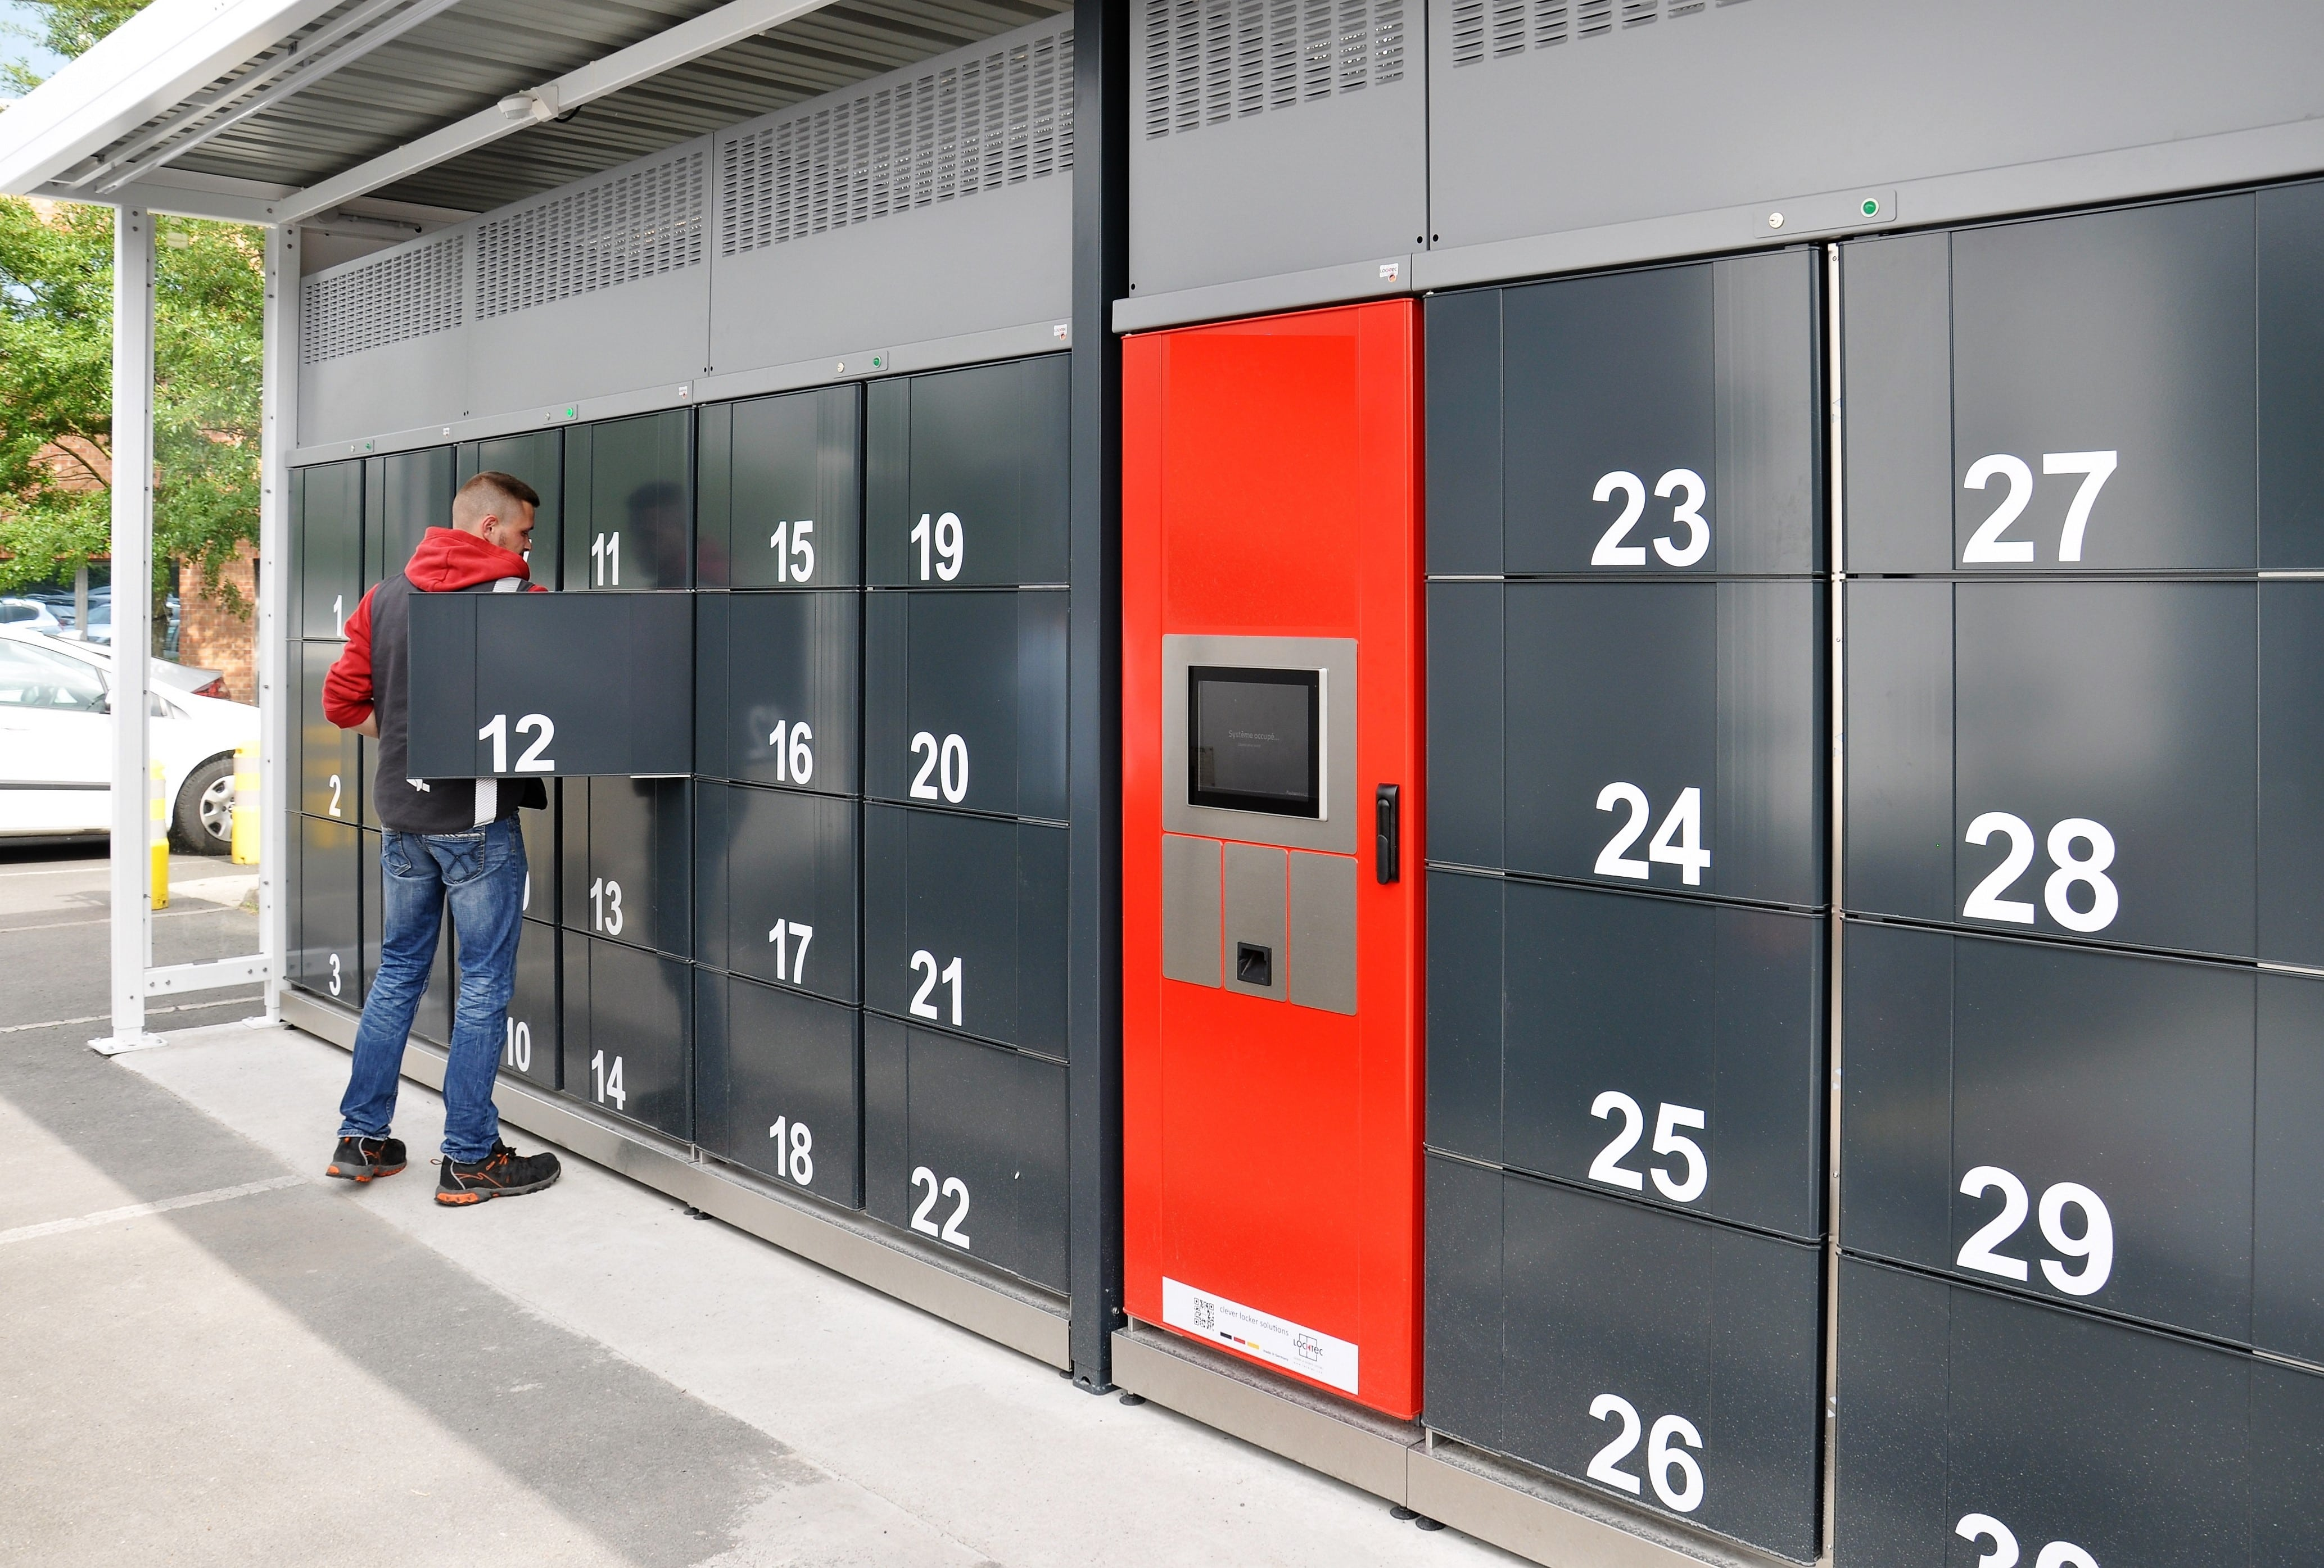 Pickup station cool lockers. Refrigerated lockers from LockTec: partly covered outdoor locker system with chilled, freezing and heated compartments.